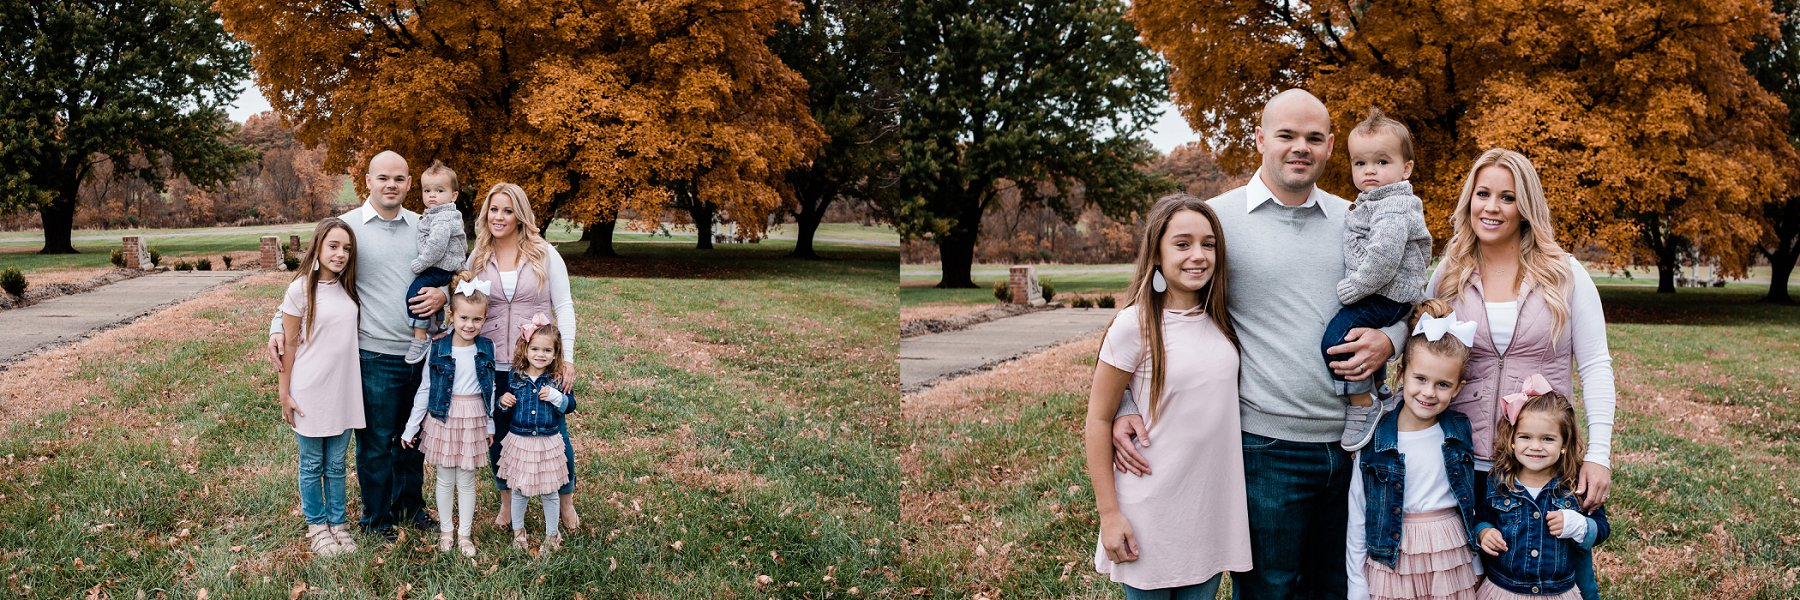 Fall Family Photography at Belvoir WInery by Family Photographer in Kansas City, Merry Ohler (2)